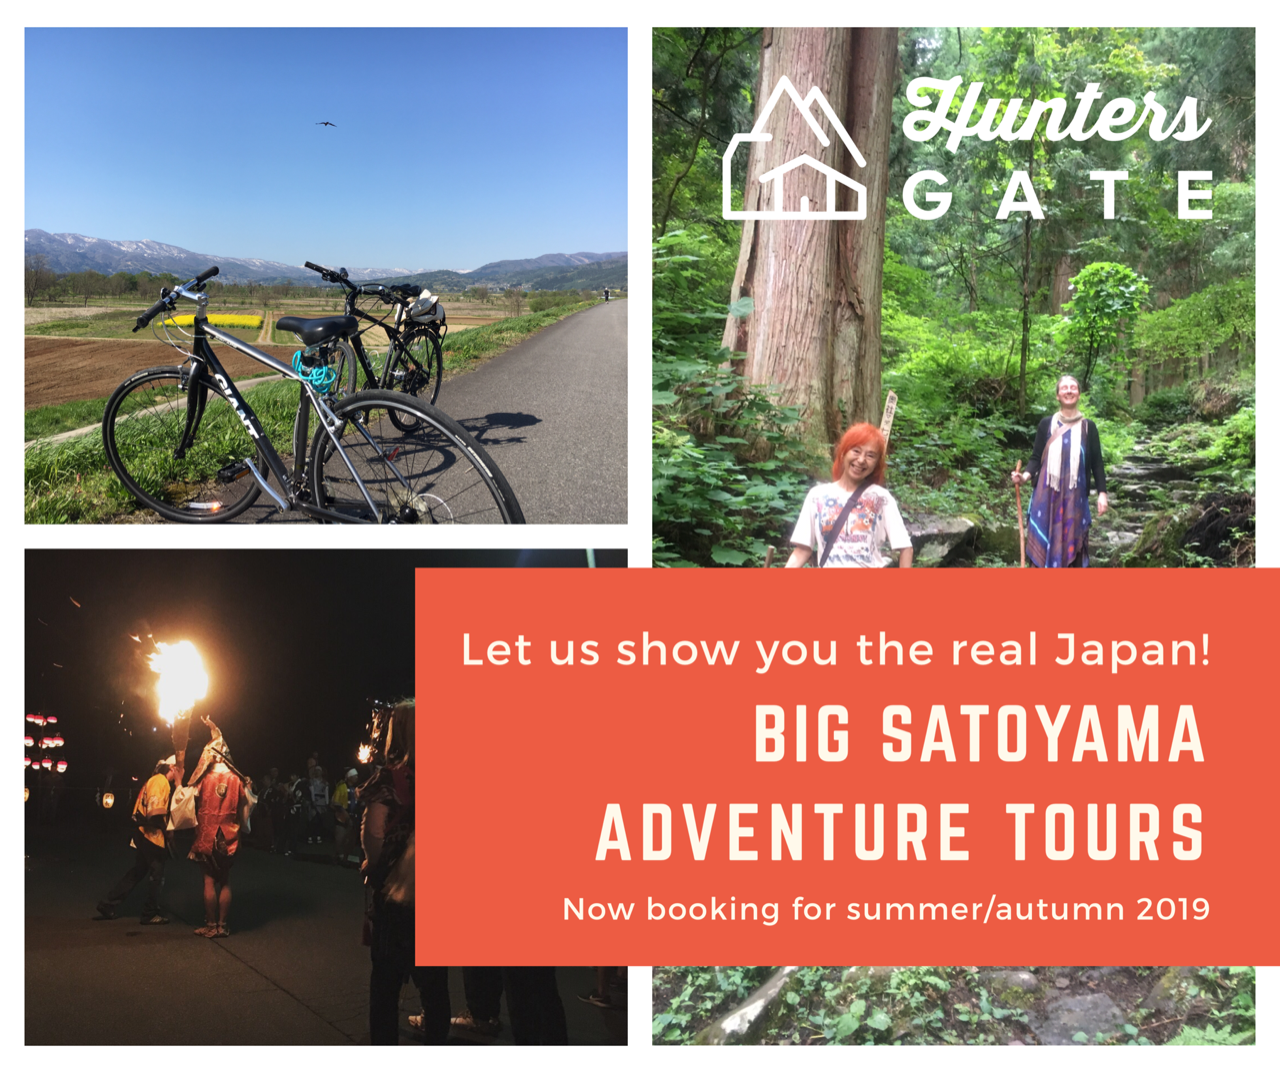 Adventure tours from Hunters Gate